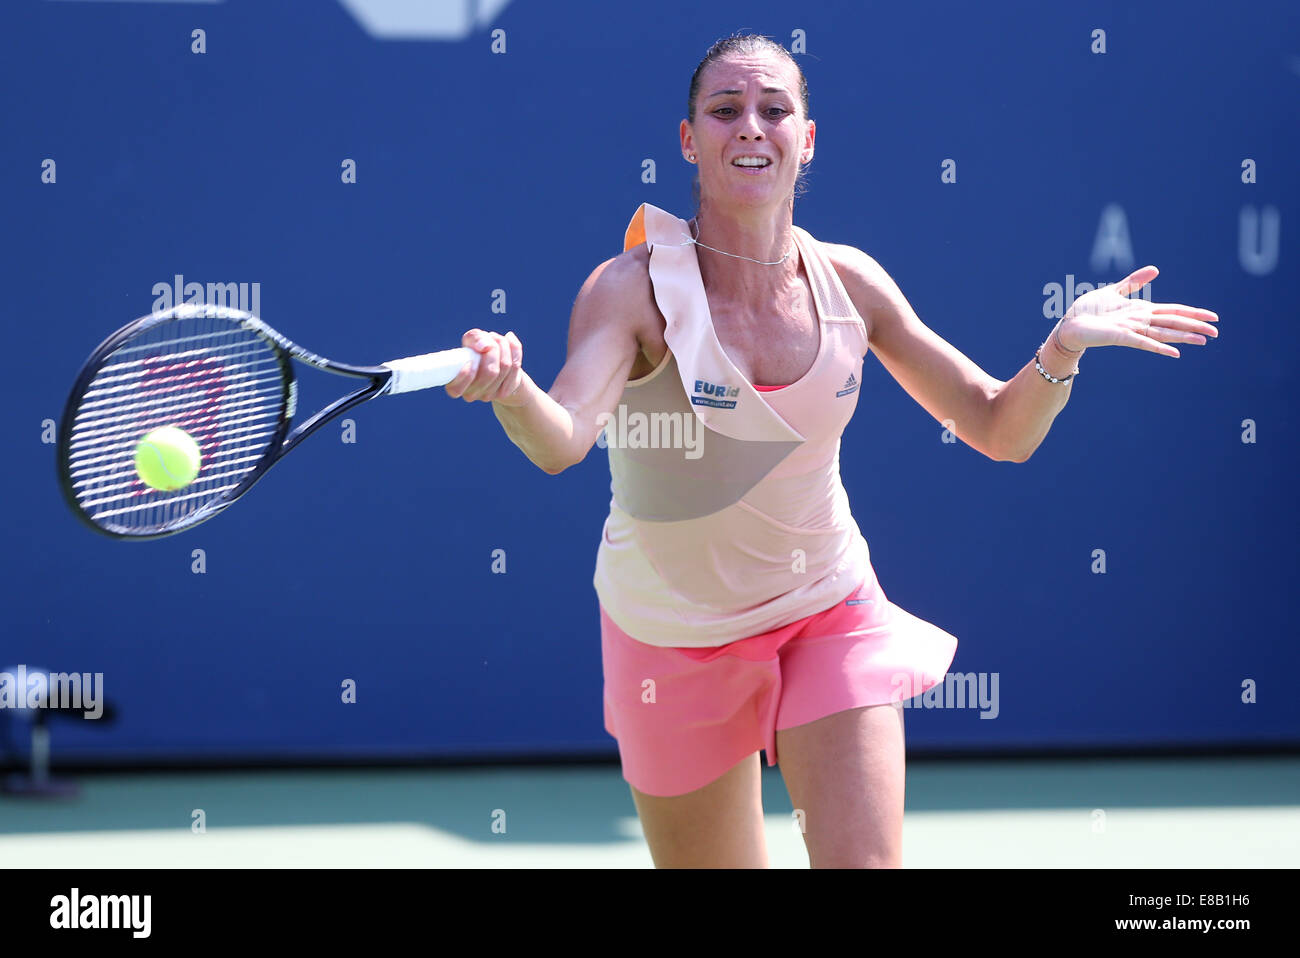 Flavia Pennetta (ITA) in action at the US Open 2014 Championships in New York, USA Stock Photo